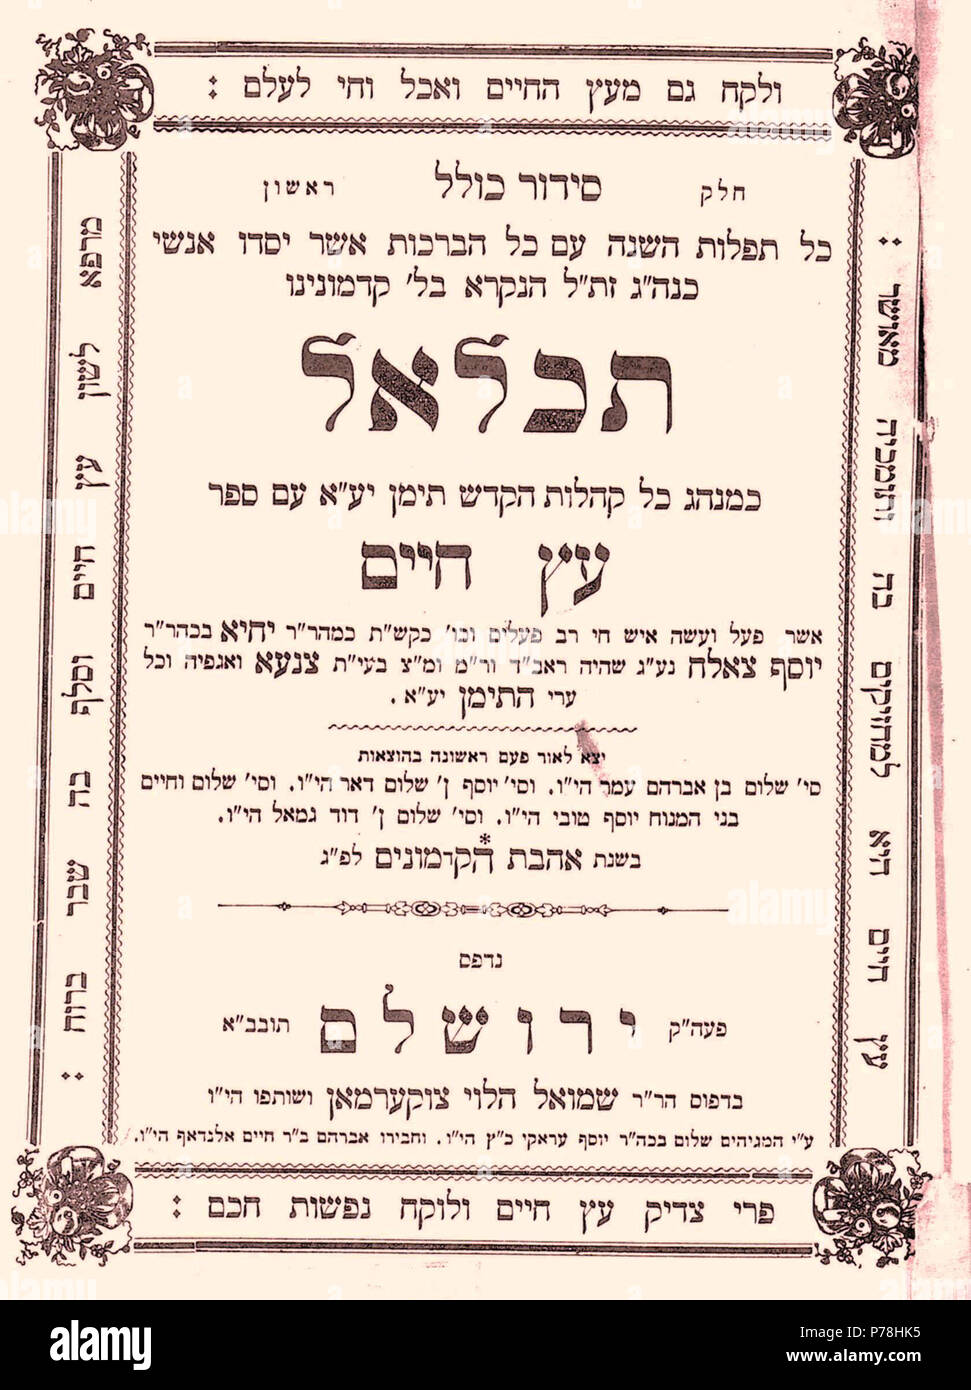 English: The front-page of a Baladi-rite Siddur, printed in Jerusalem in 1899 by Avraham Al-Naddaf . Published in Jerusalem in 1899, during the Ottoman period 13 Front page of Yemenite Siddur printed in Jerusalem in 1899 - Stock Image